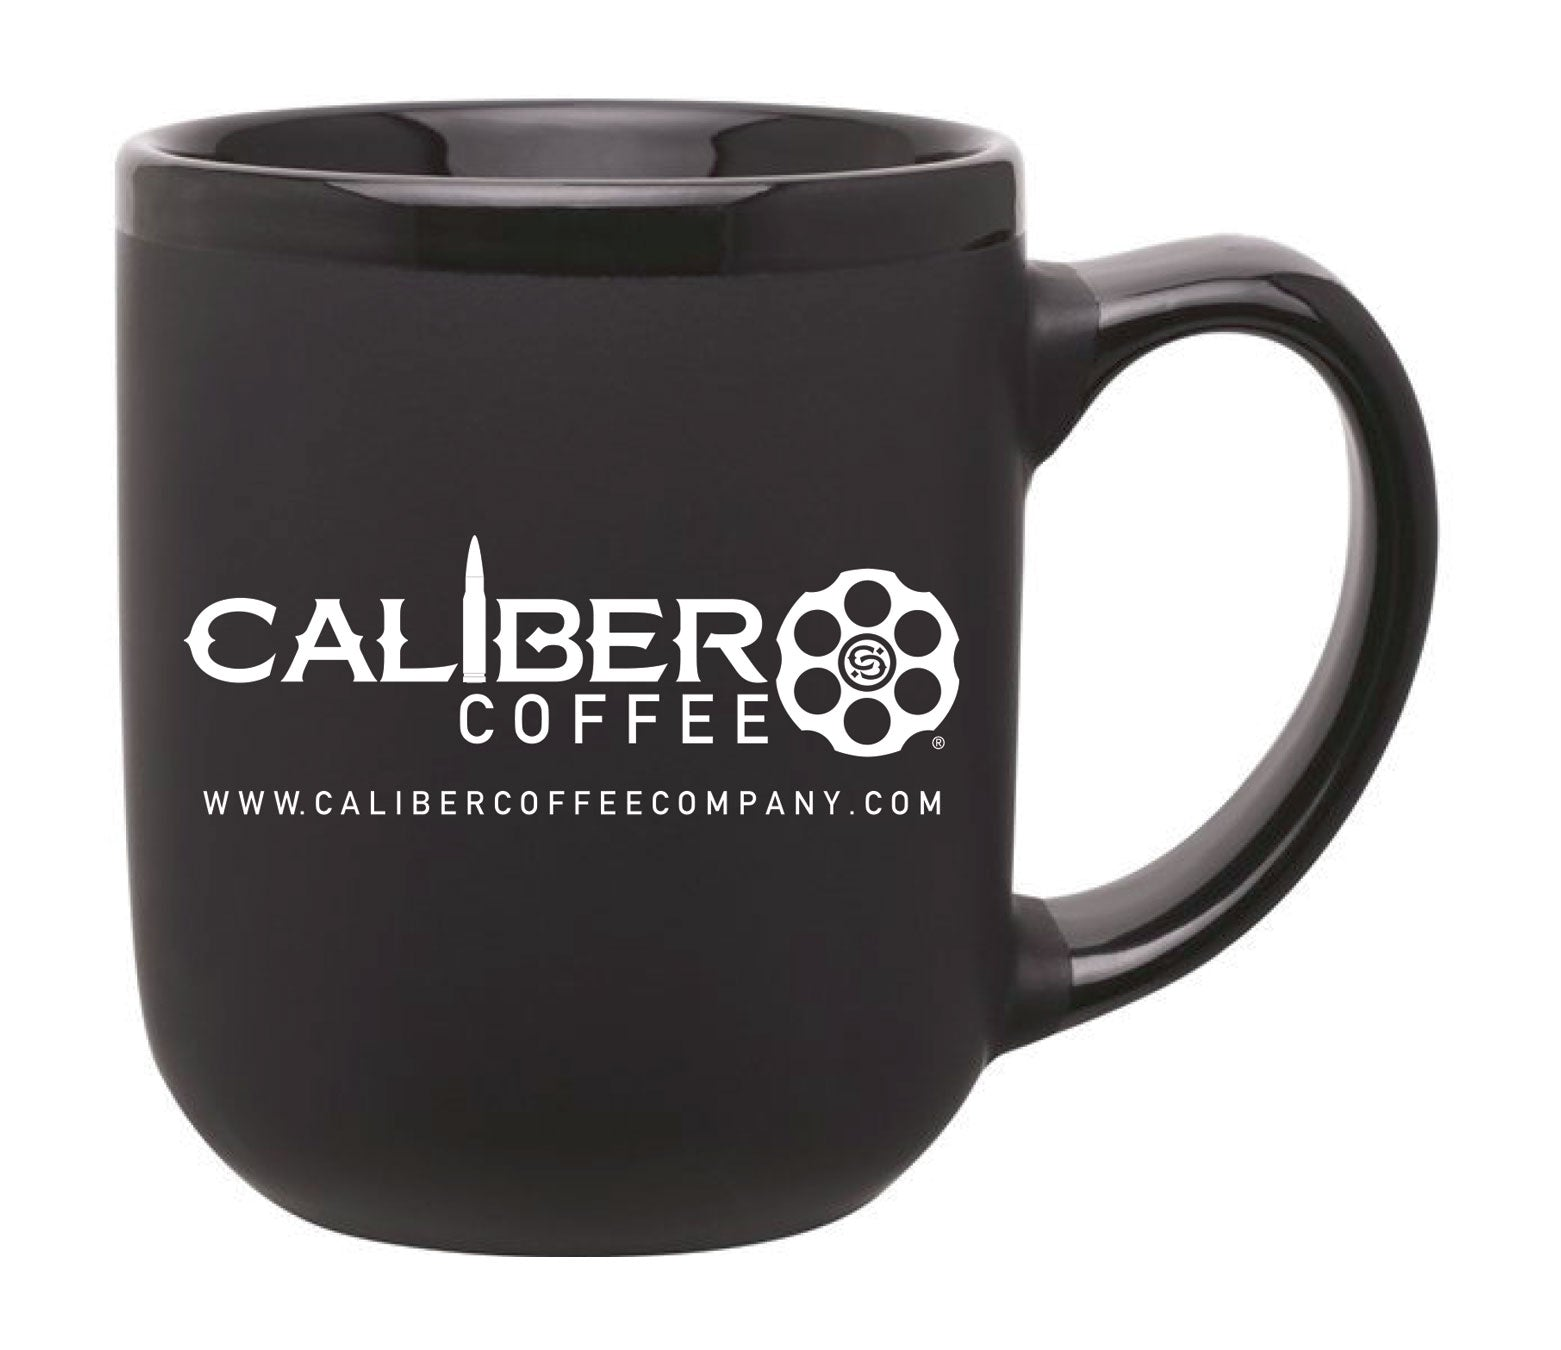 CC TACTICAL COFFEE MUG